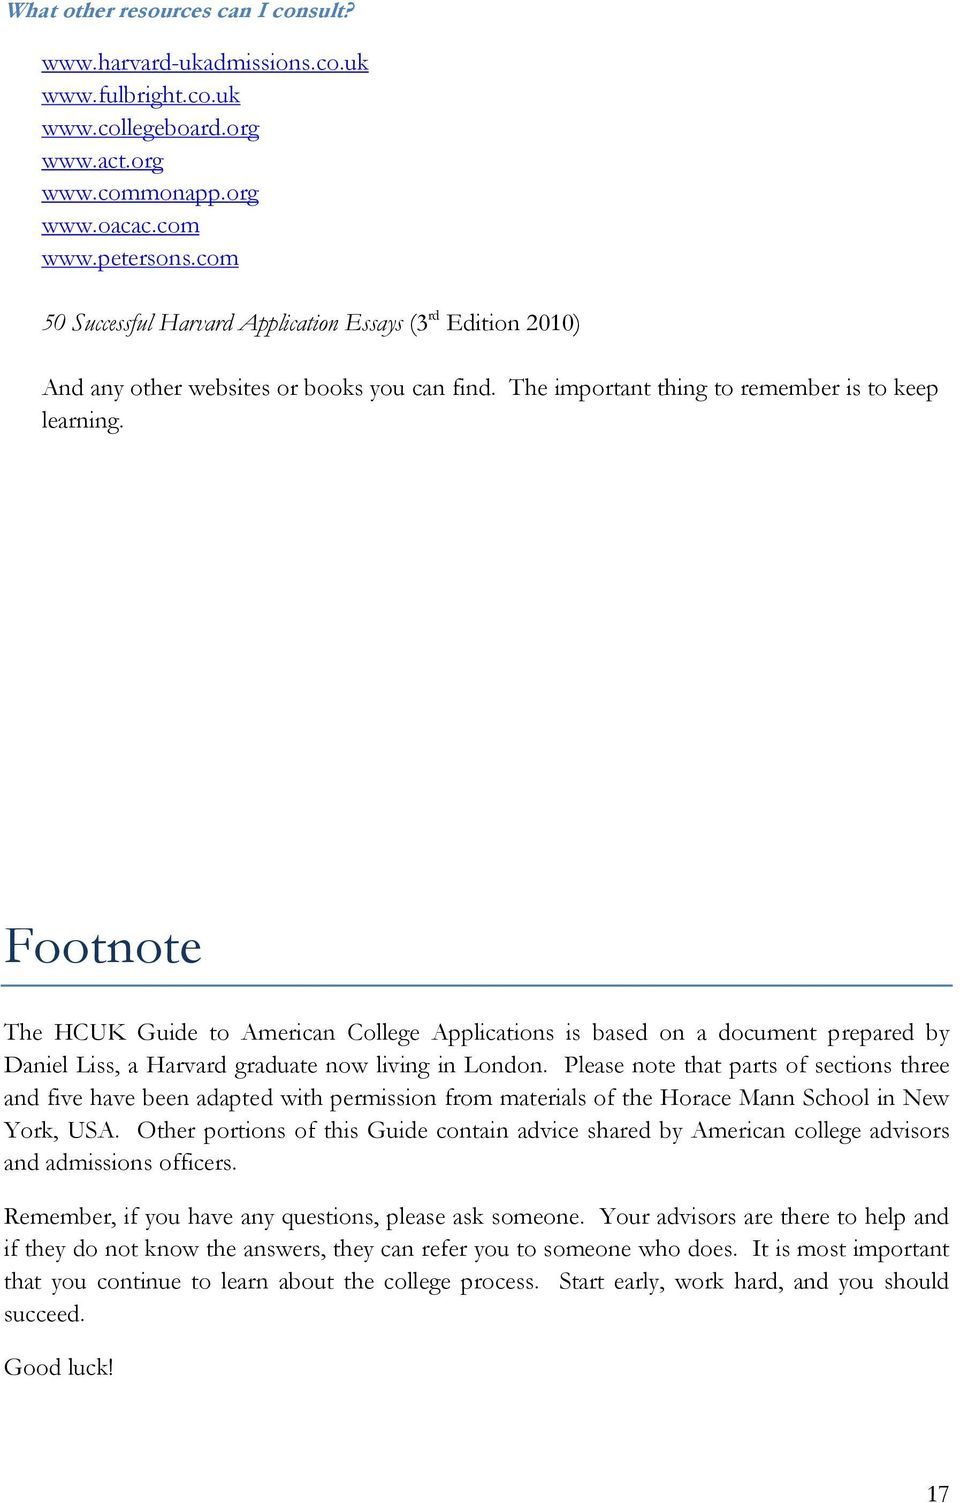 Footnote The HCUK Guide to American College Applications is based on a document prepared by Daniel Liss, a Harvard graduate now living in London.